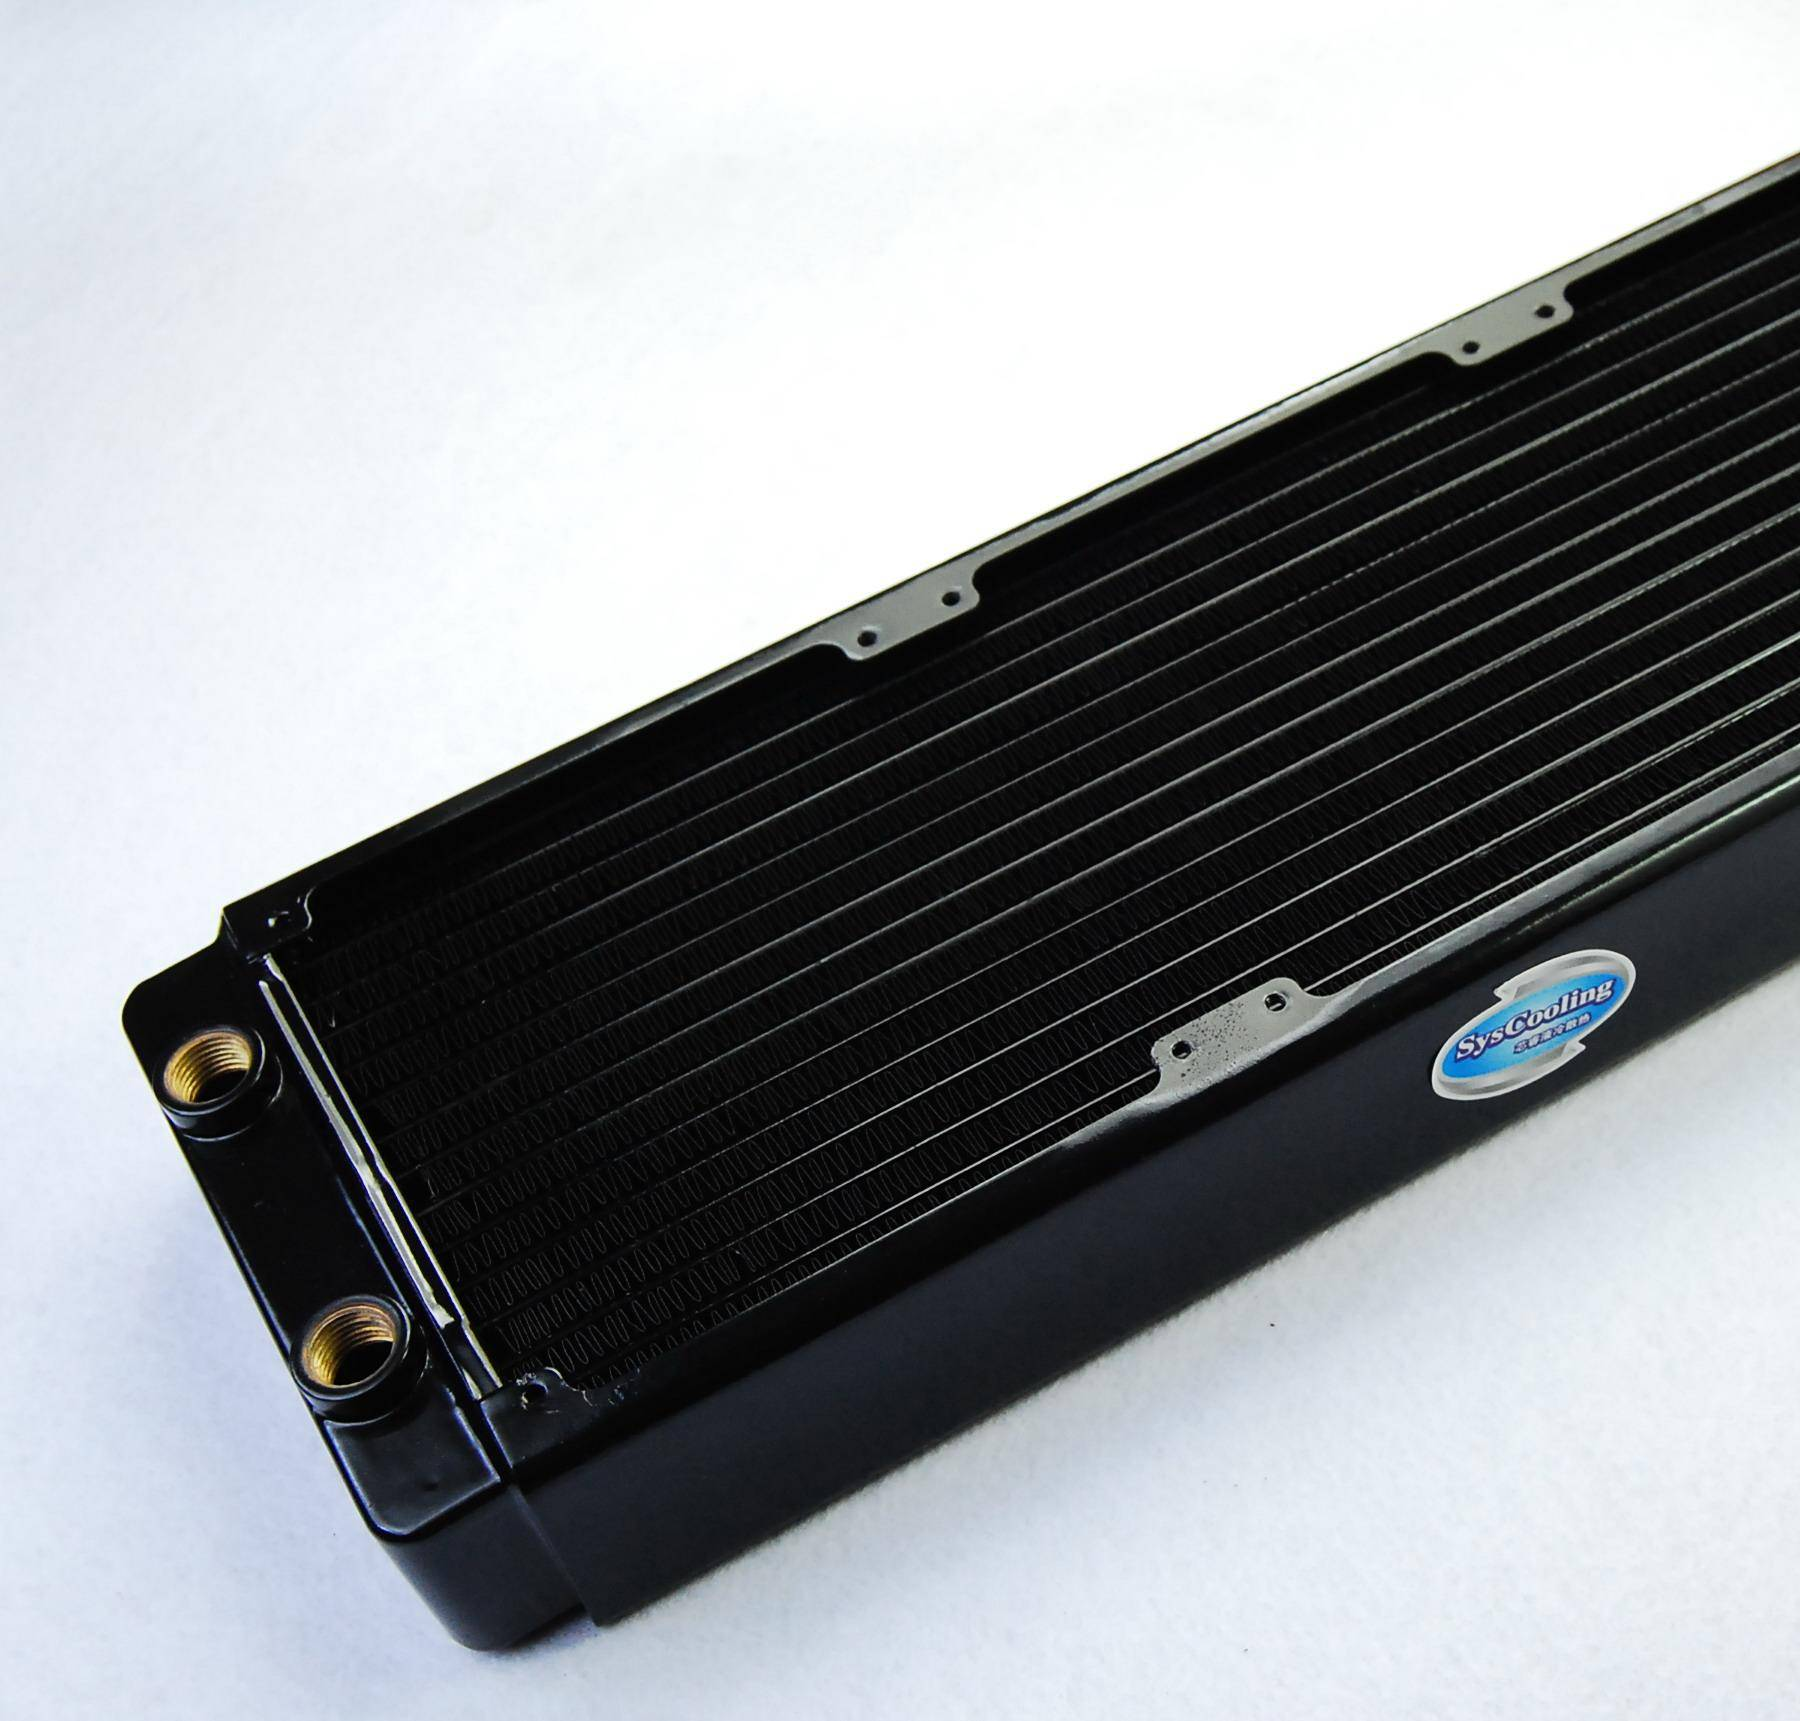 Syscooloing 8 mm U-zone PD360 COPPER radiator